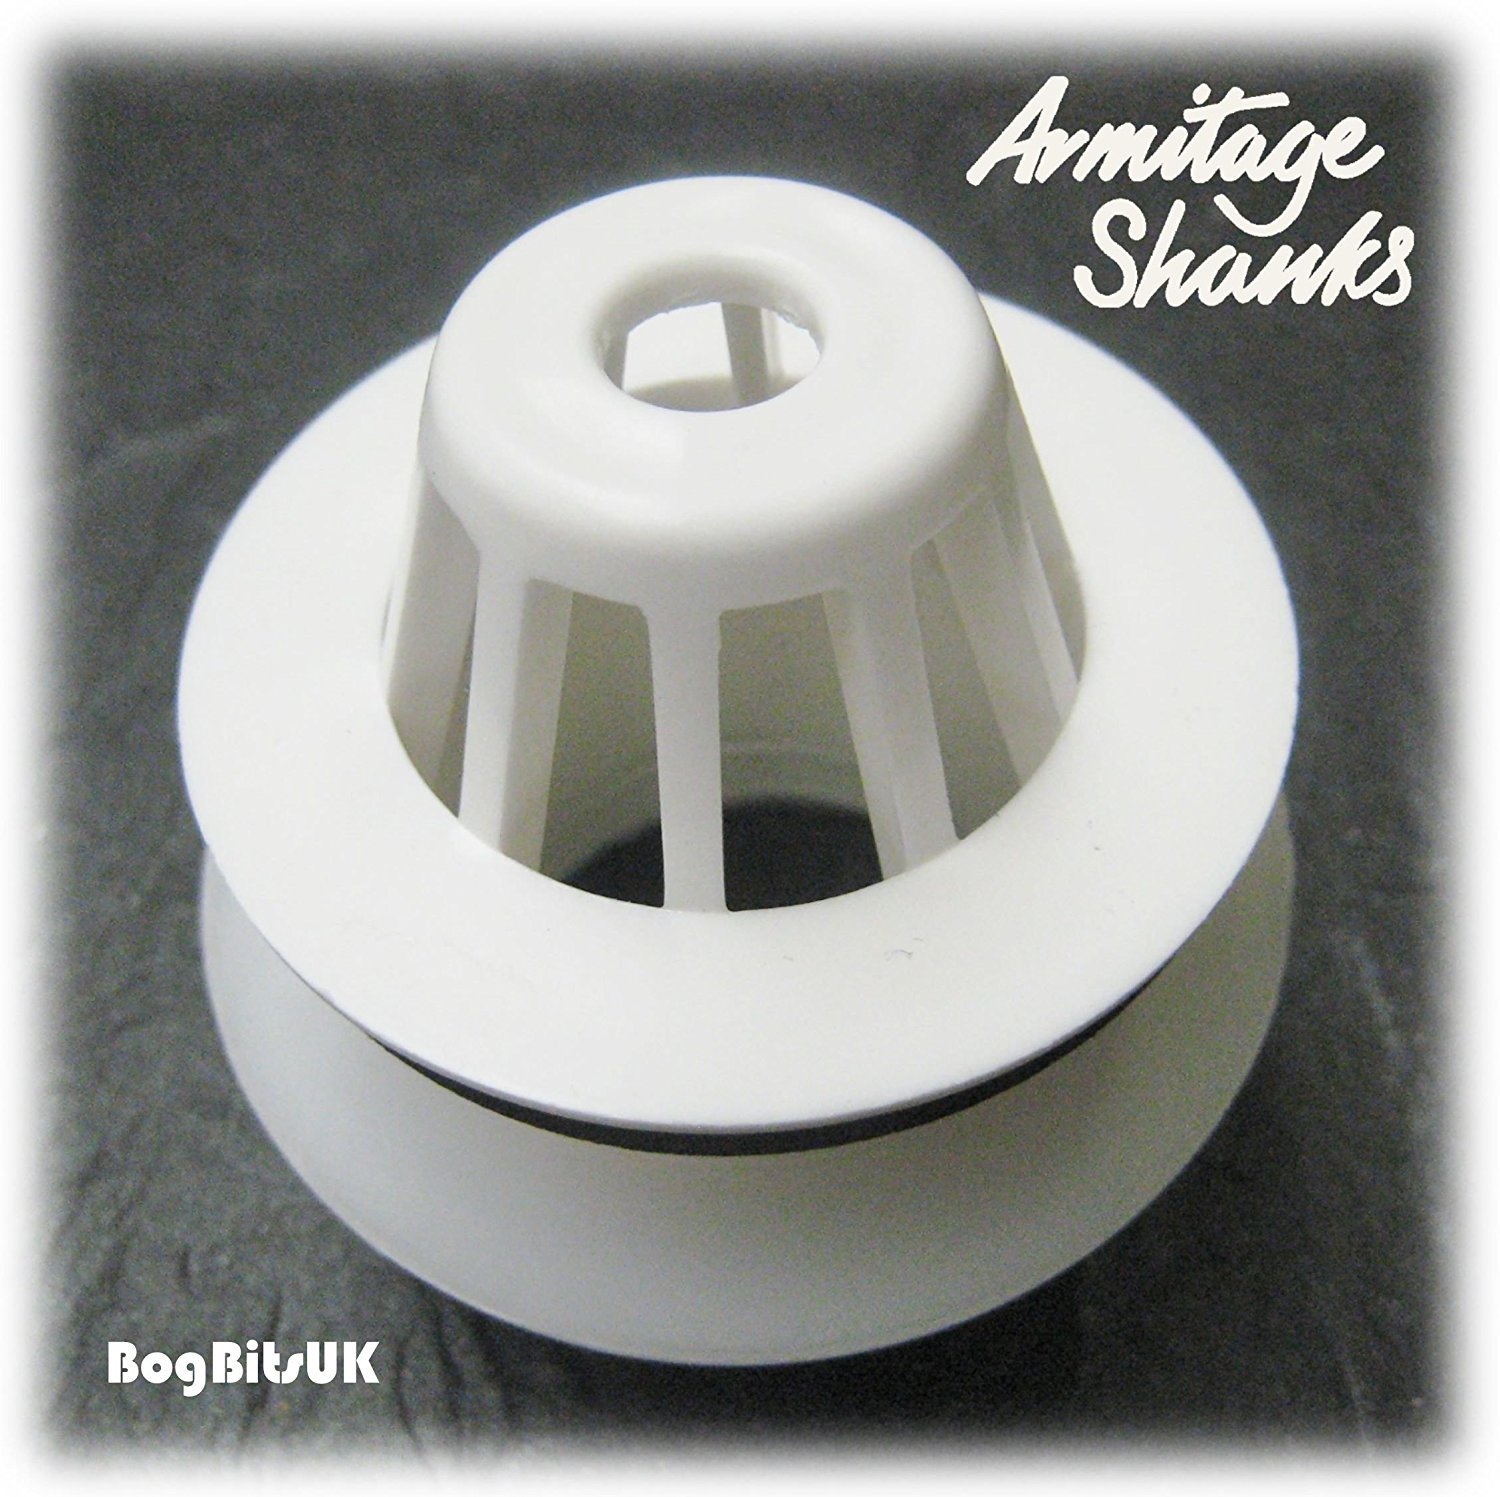 Armitage Shanks S885067 1-1/2' 40mm Domed Urinal Strainer Waste White